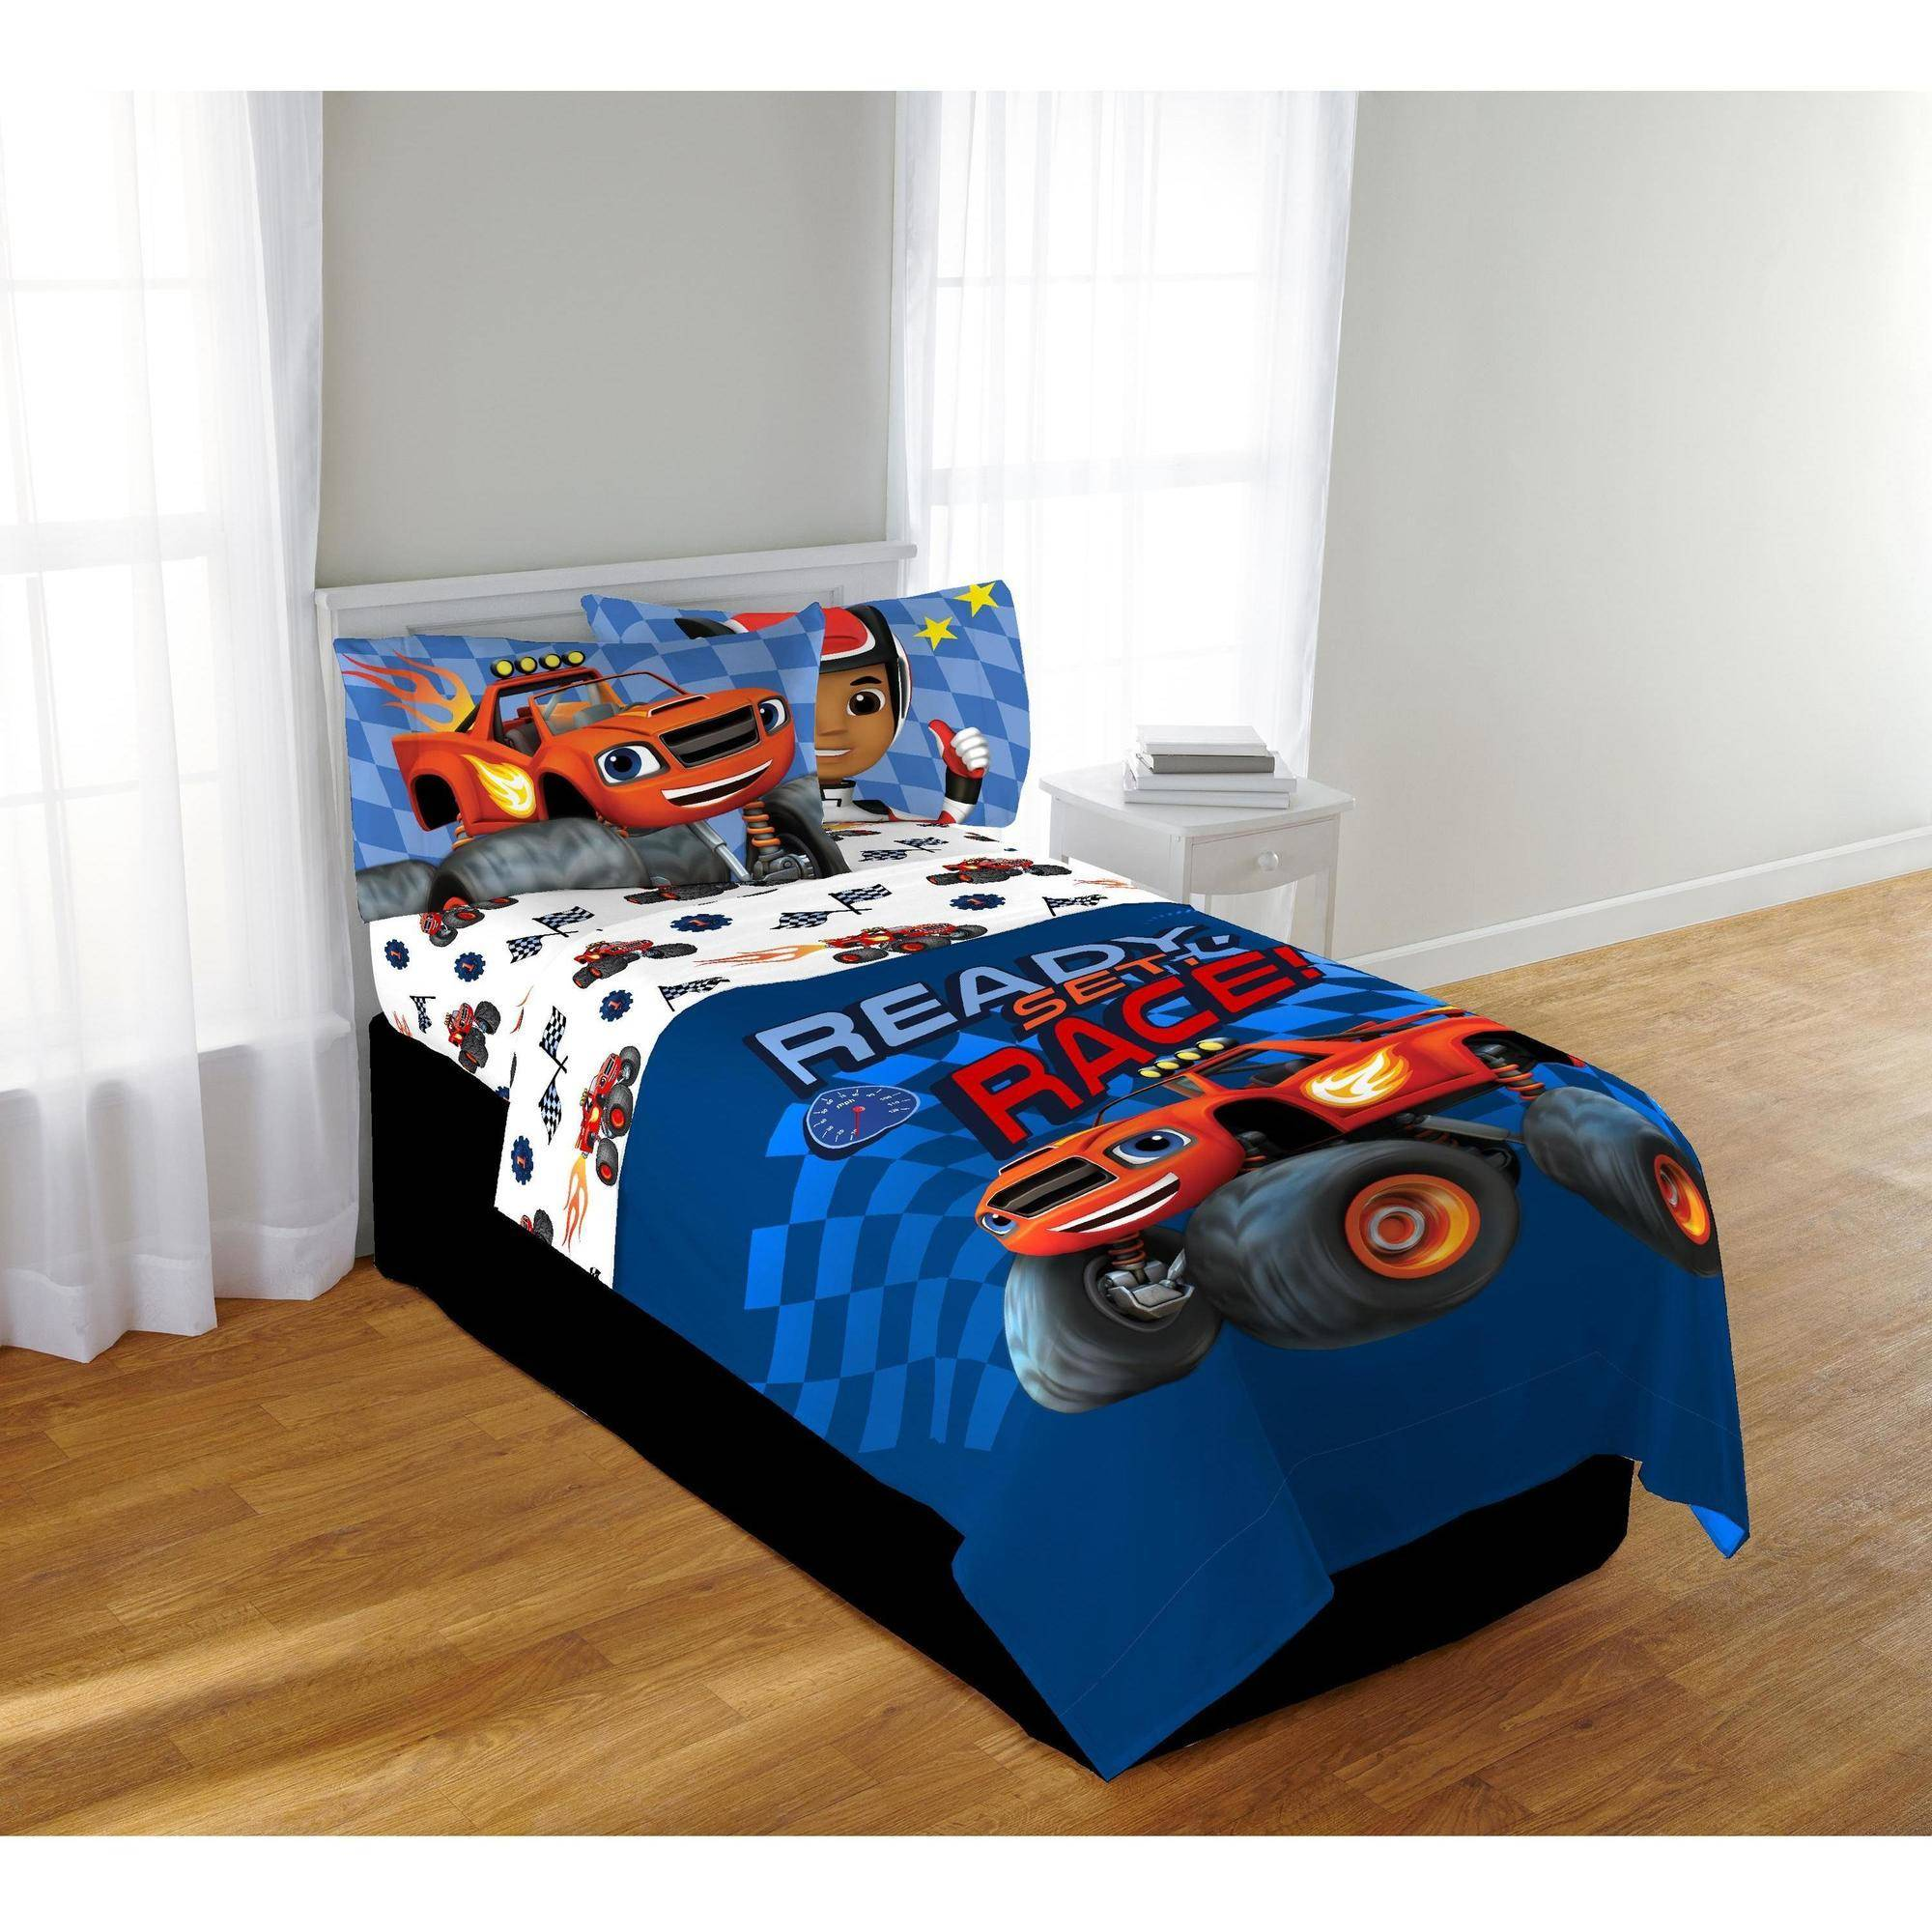 Blaze and the Monster Machines Twin/Full Comforter